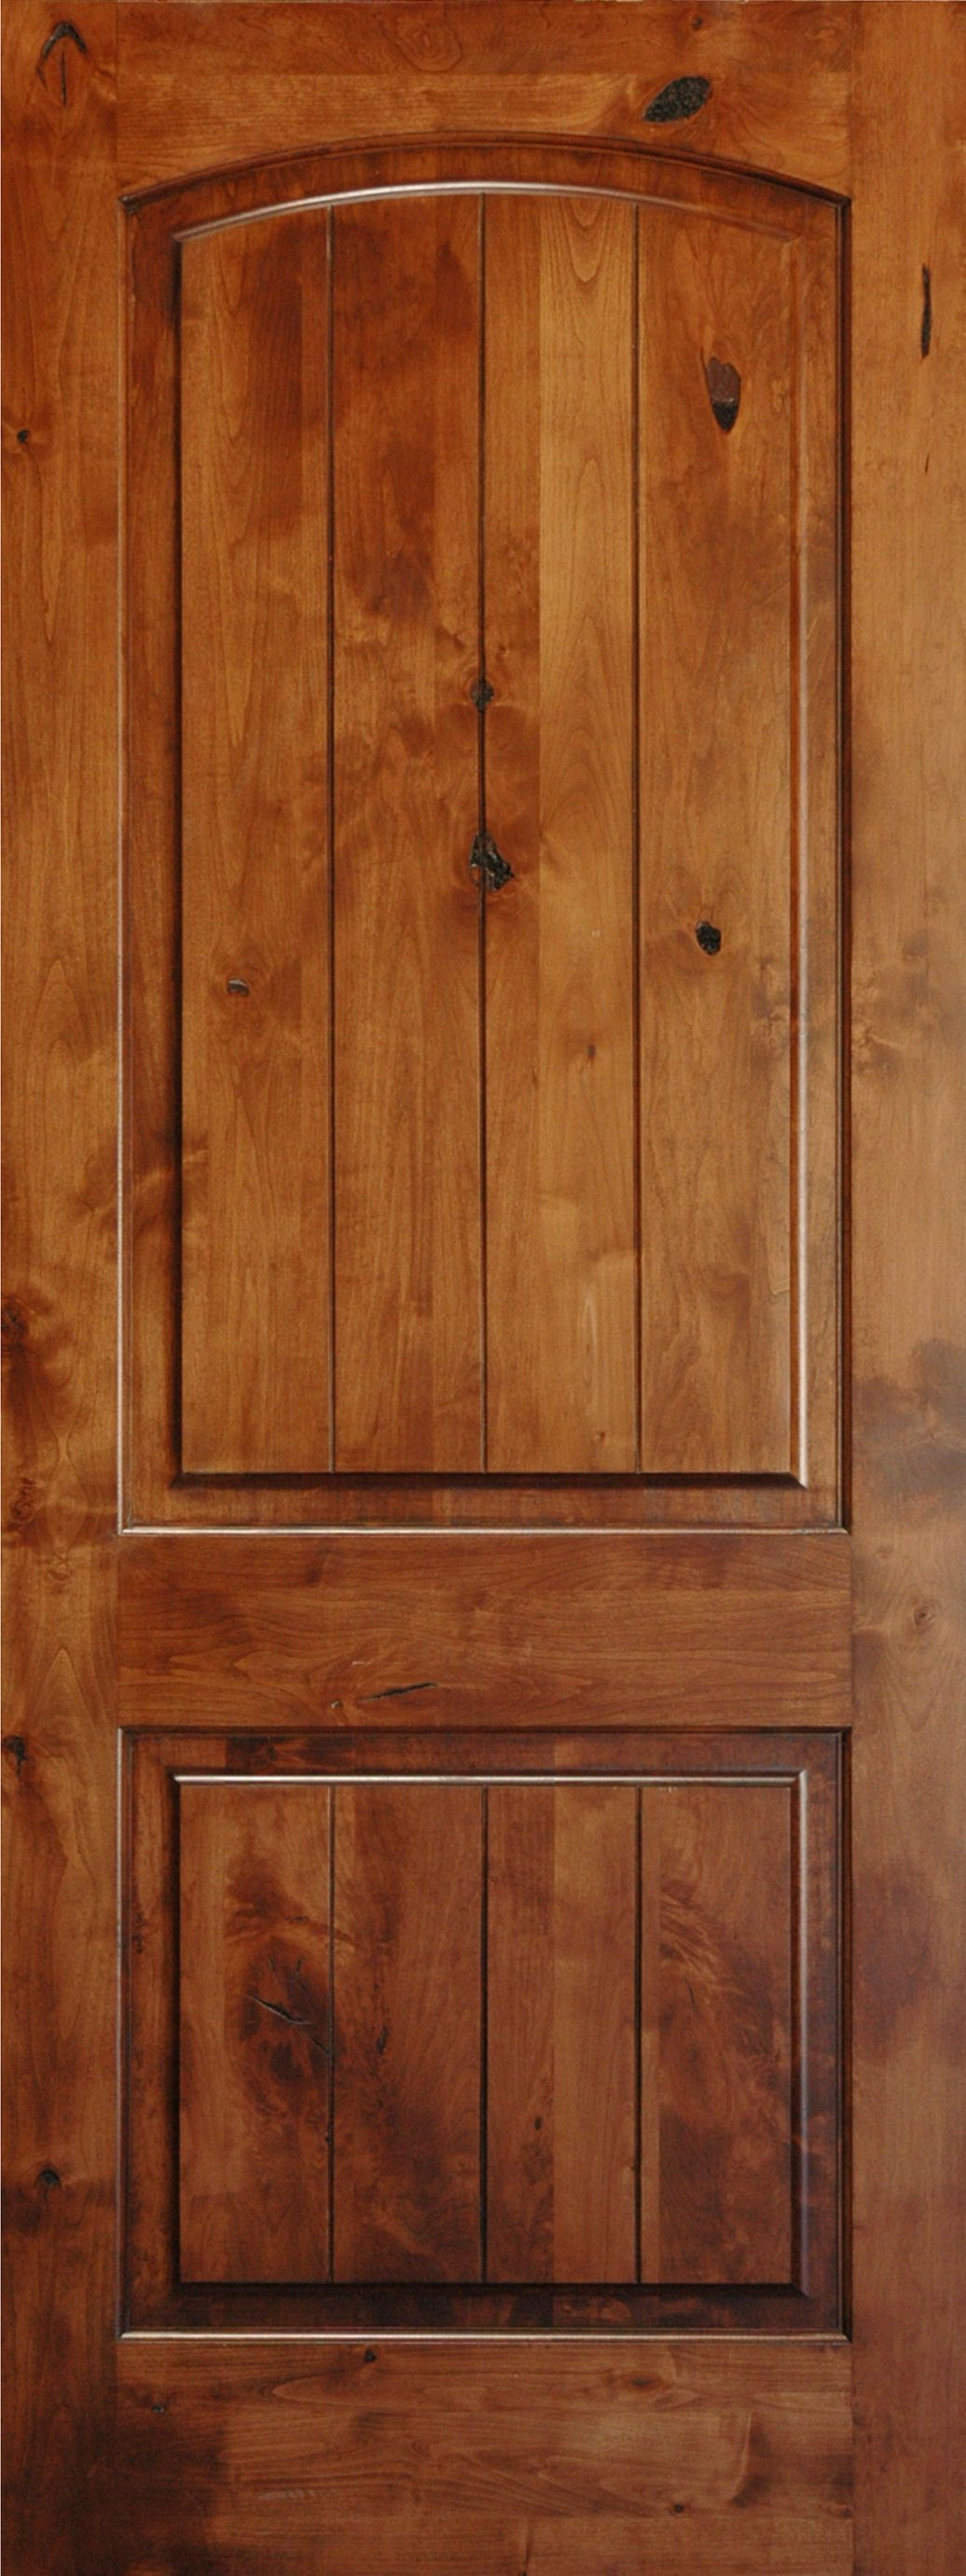 doors door l stable interior wooden superb